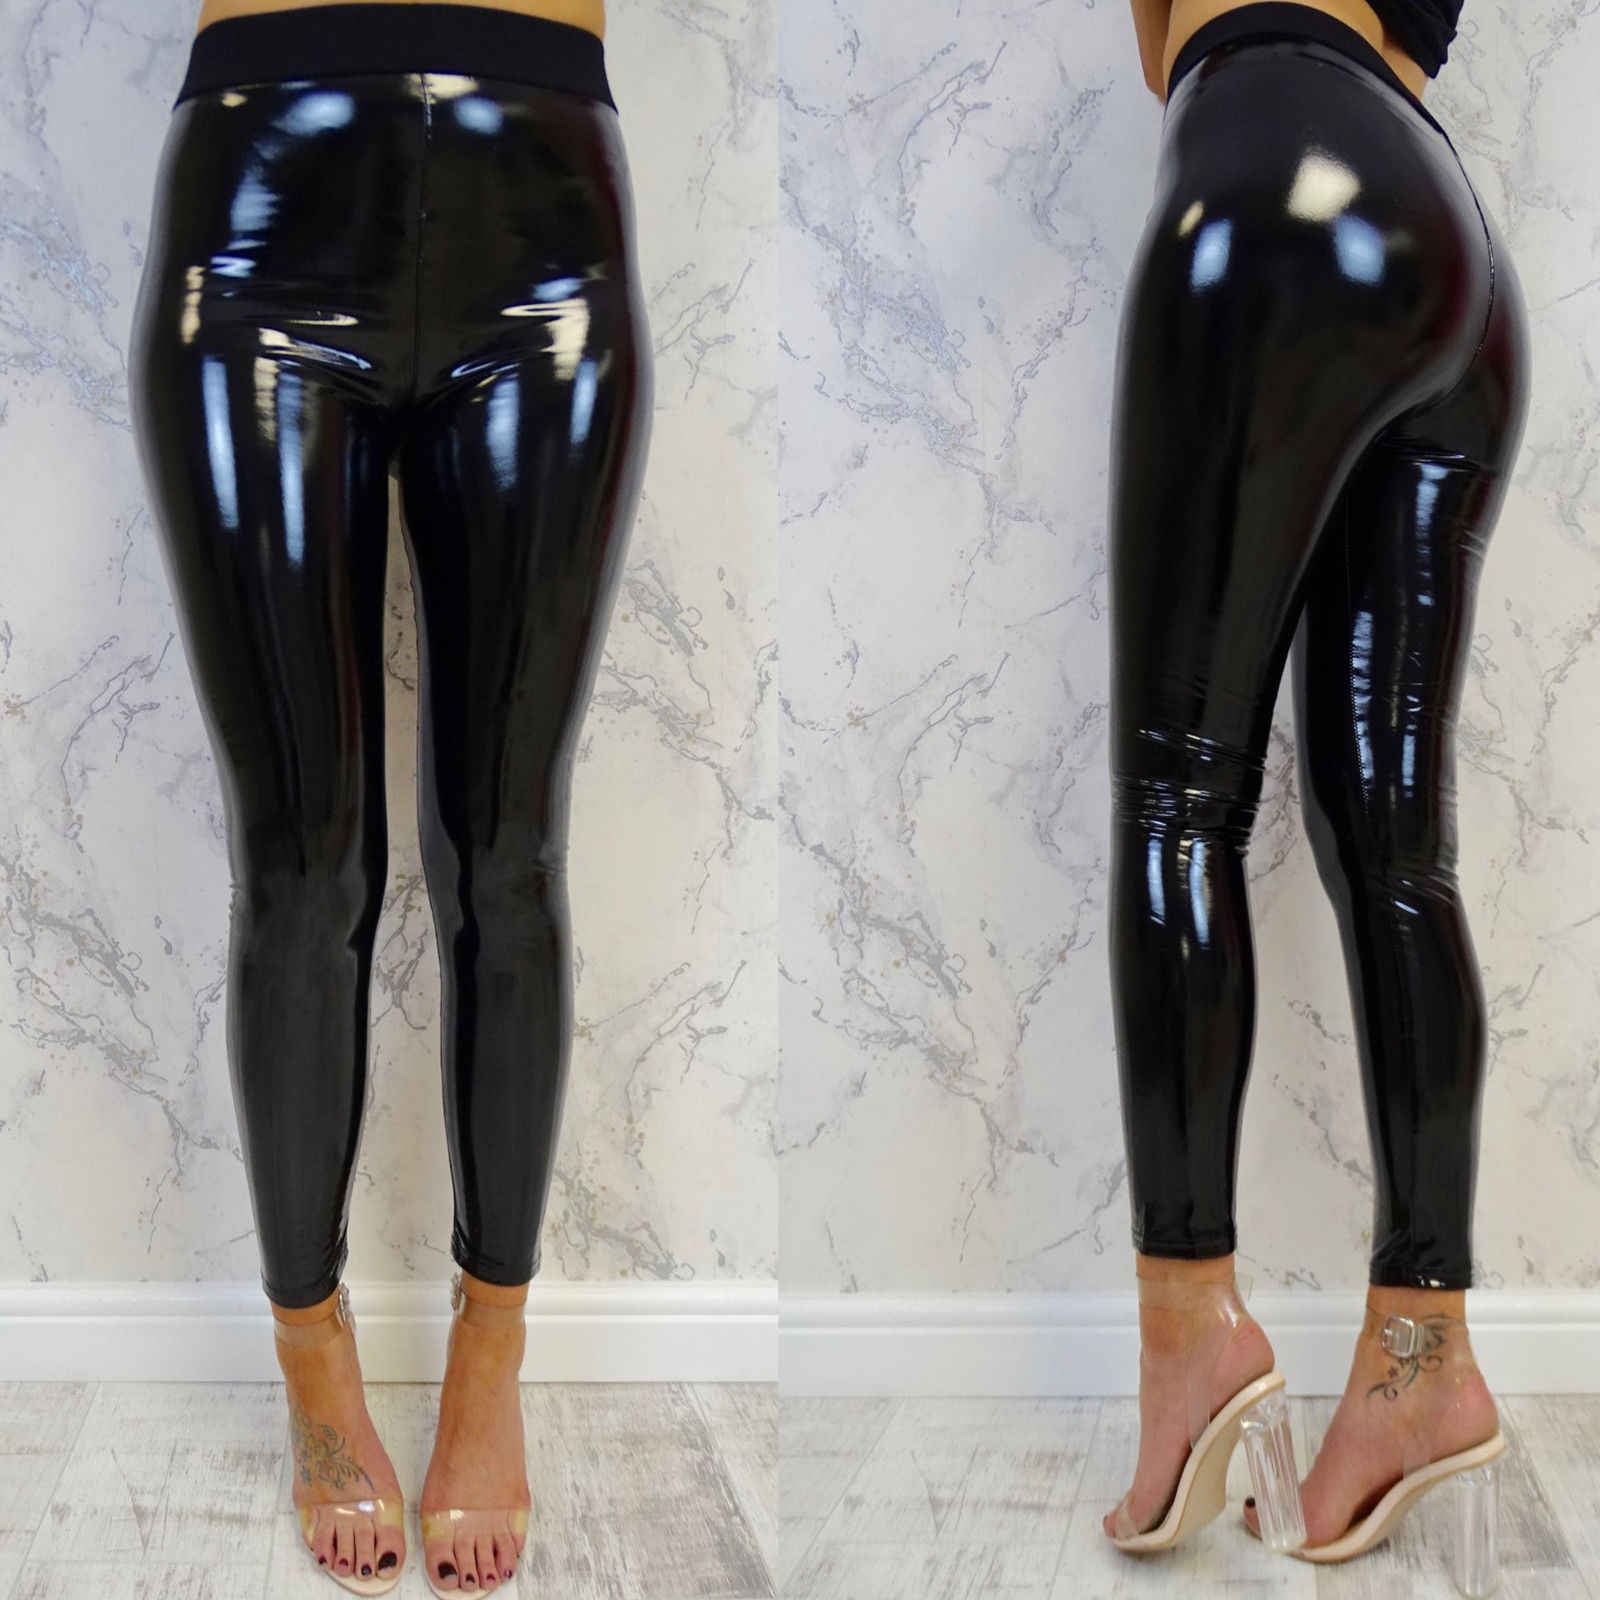 Winter Gothic Strethcy Shiny Wet Look Pu Lederen Leggings Vrouwen Zwarte Slanke Push Up Lange Broek Dames Sex Skinny Leggings